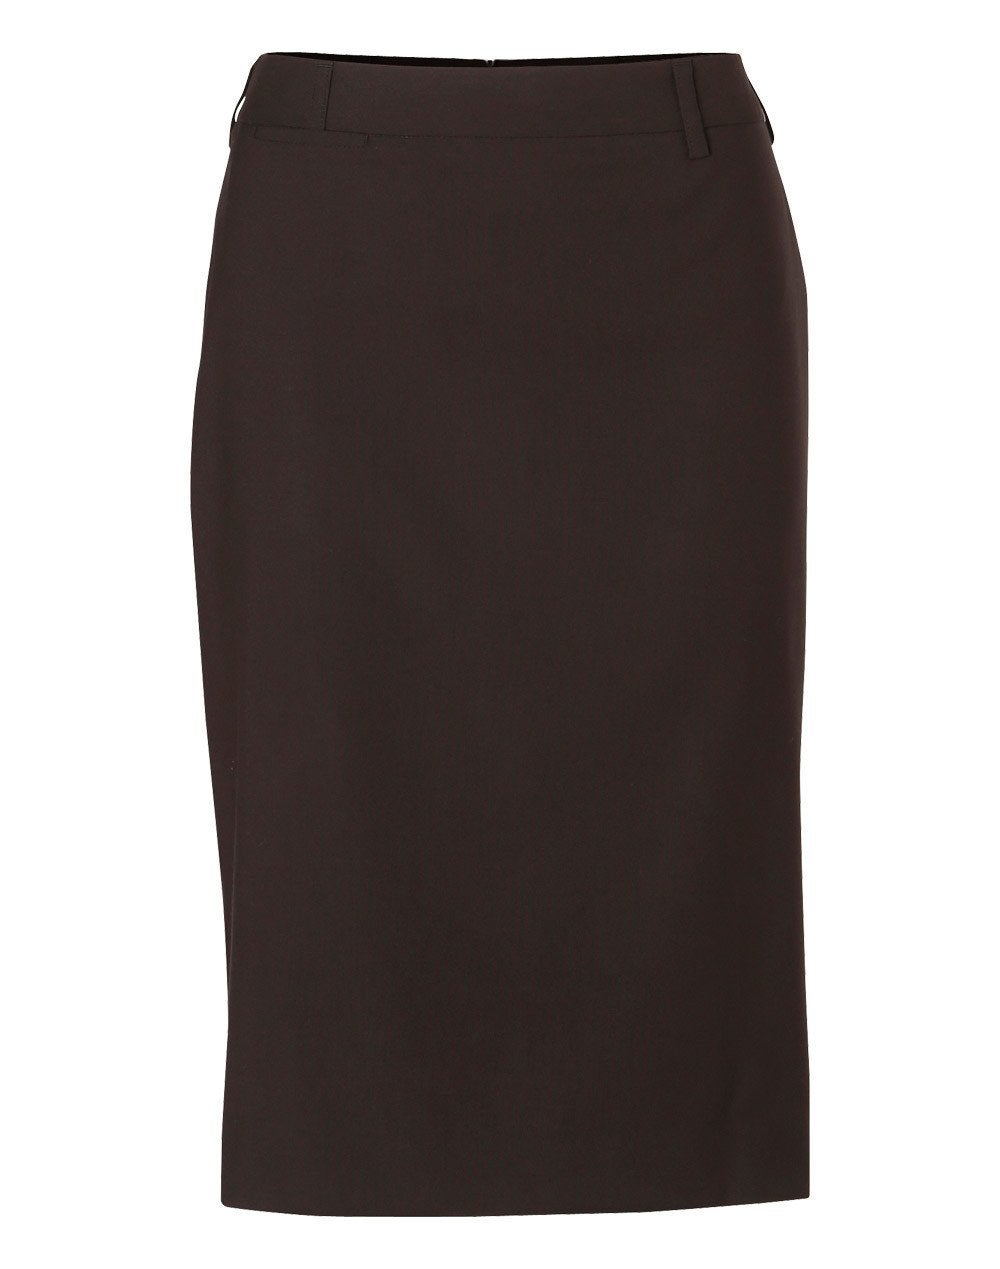 Stretch Mid Length Lined Pencil Skirt